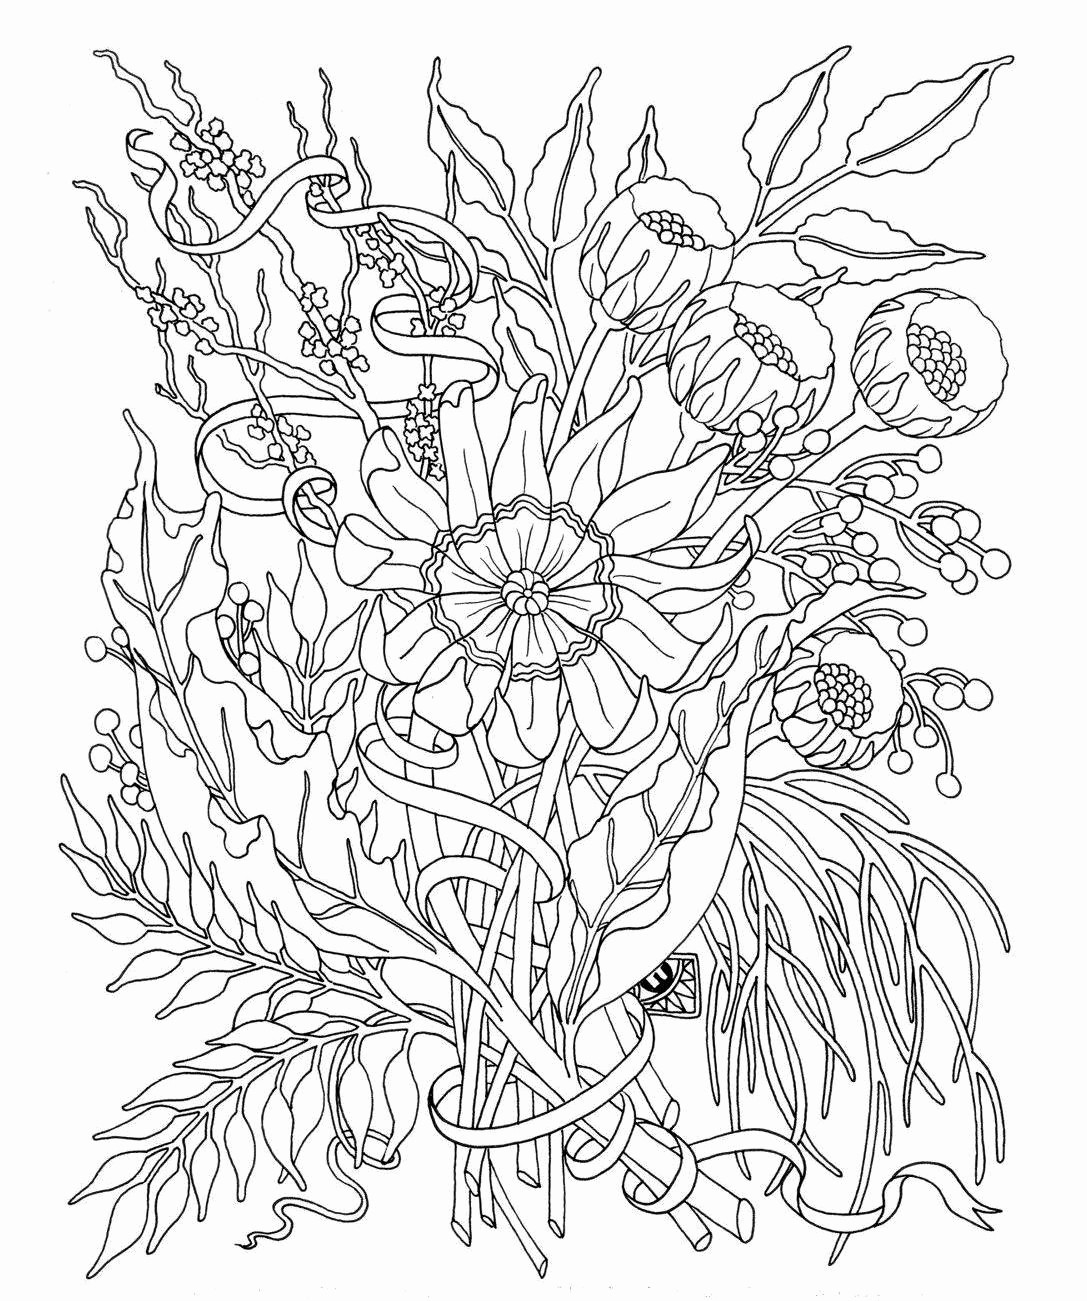 flower vase of clone wars coloring pages luxury cool vases flower vase coloring pertaining to clone wars coloring pages luxury cool vases flower vase coloring page pages flowers in a top